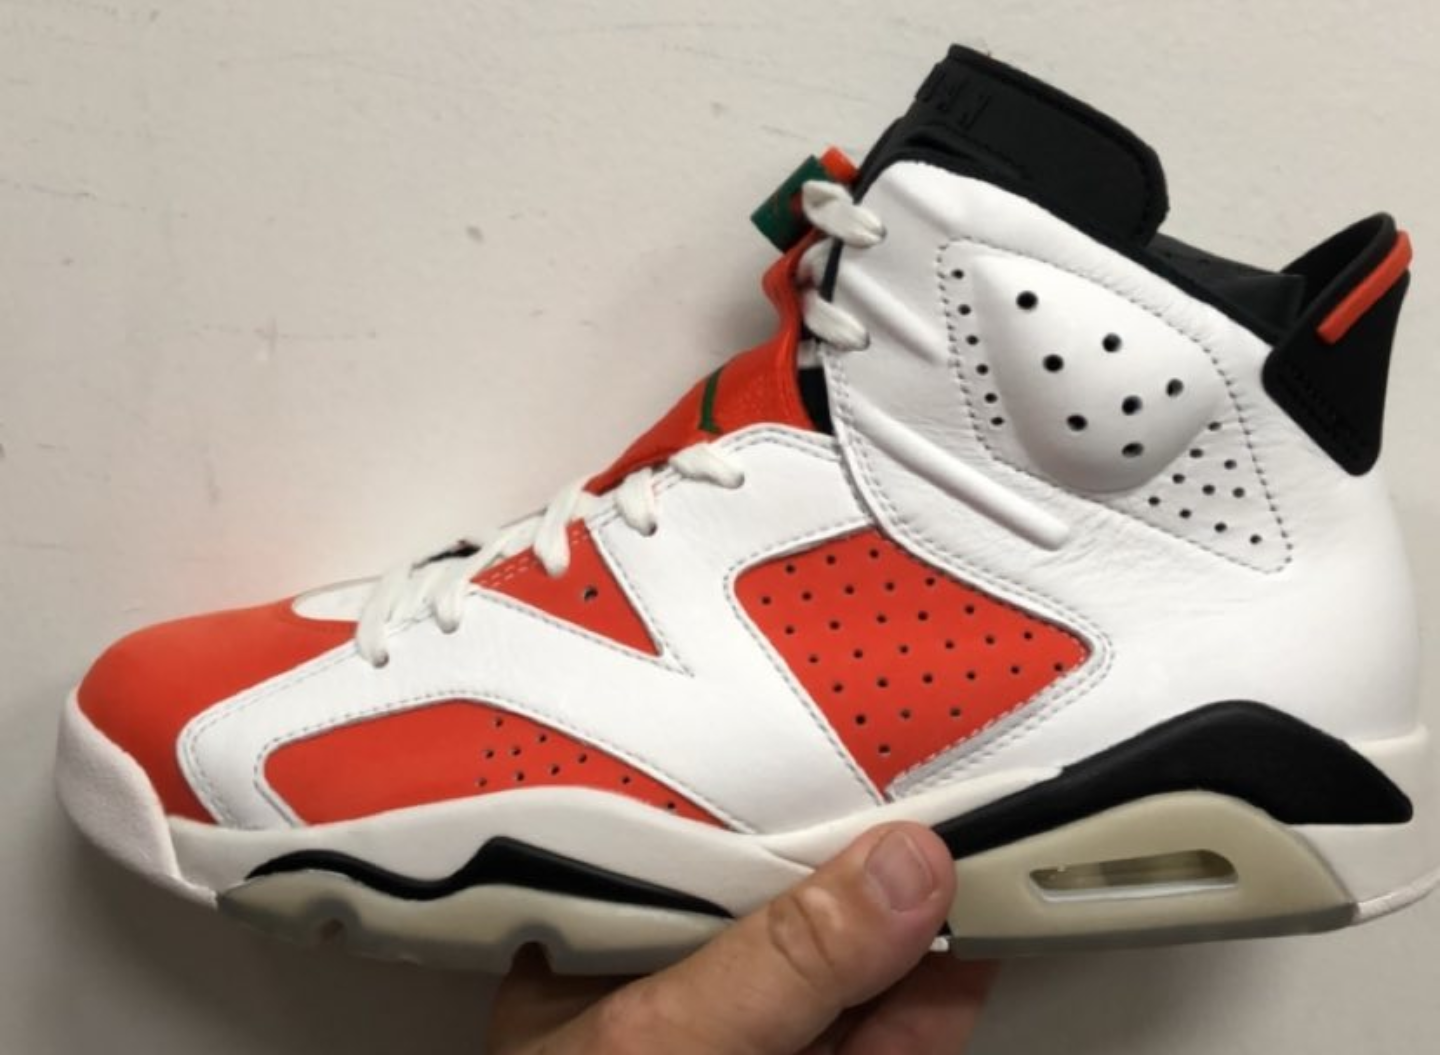 hot sale online 030e8 40264 Detailed Look at the Air Jordan 6 'Gatorade' - WearTesters